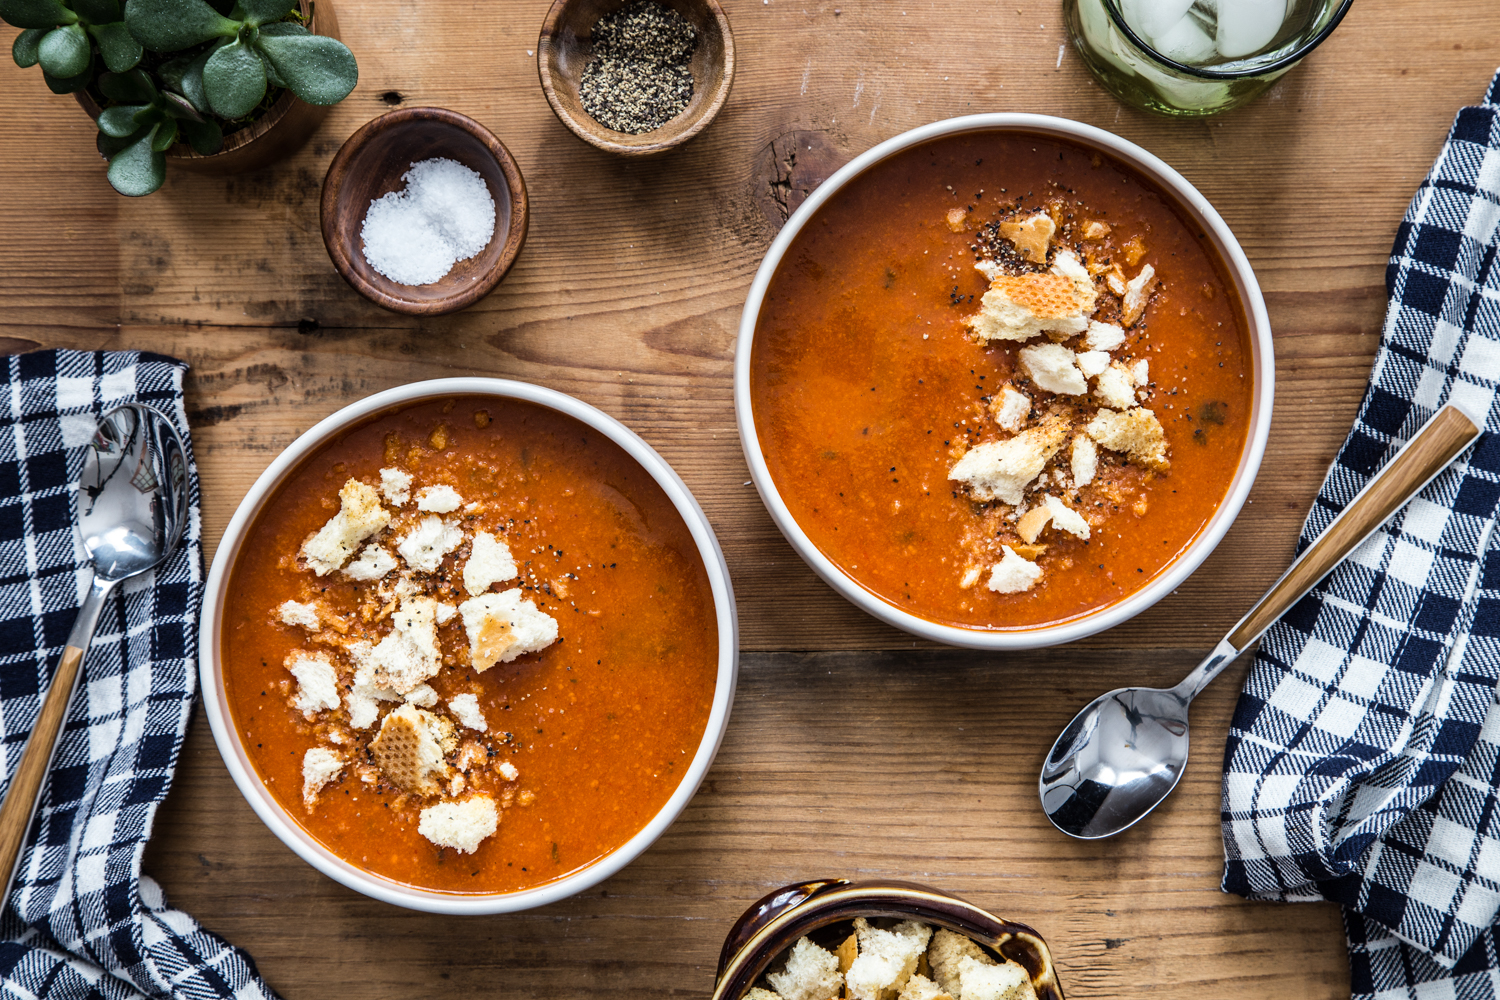 Roasted Tomato Soup with Garlic Croutons